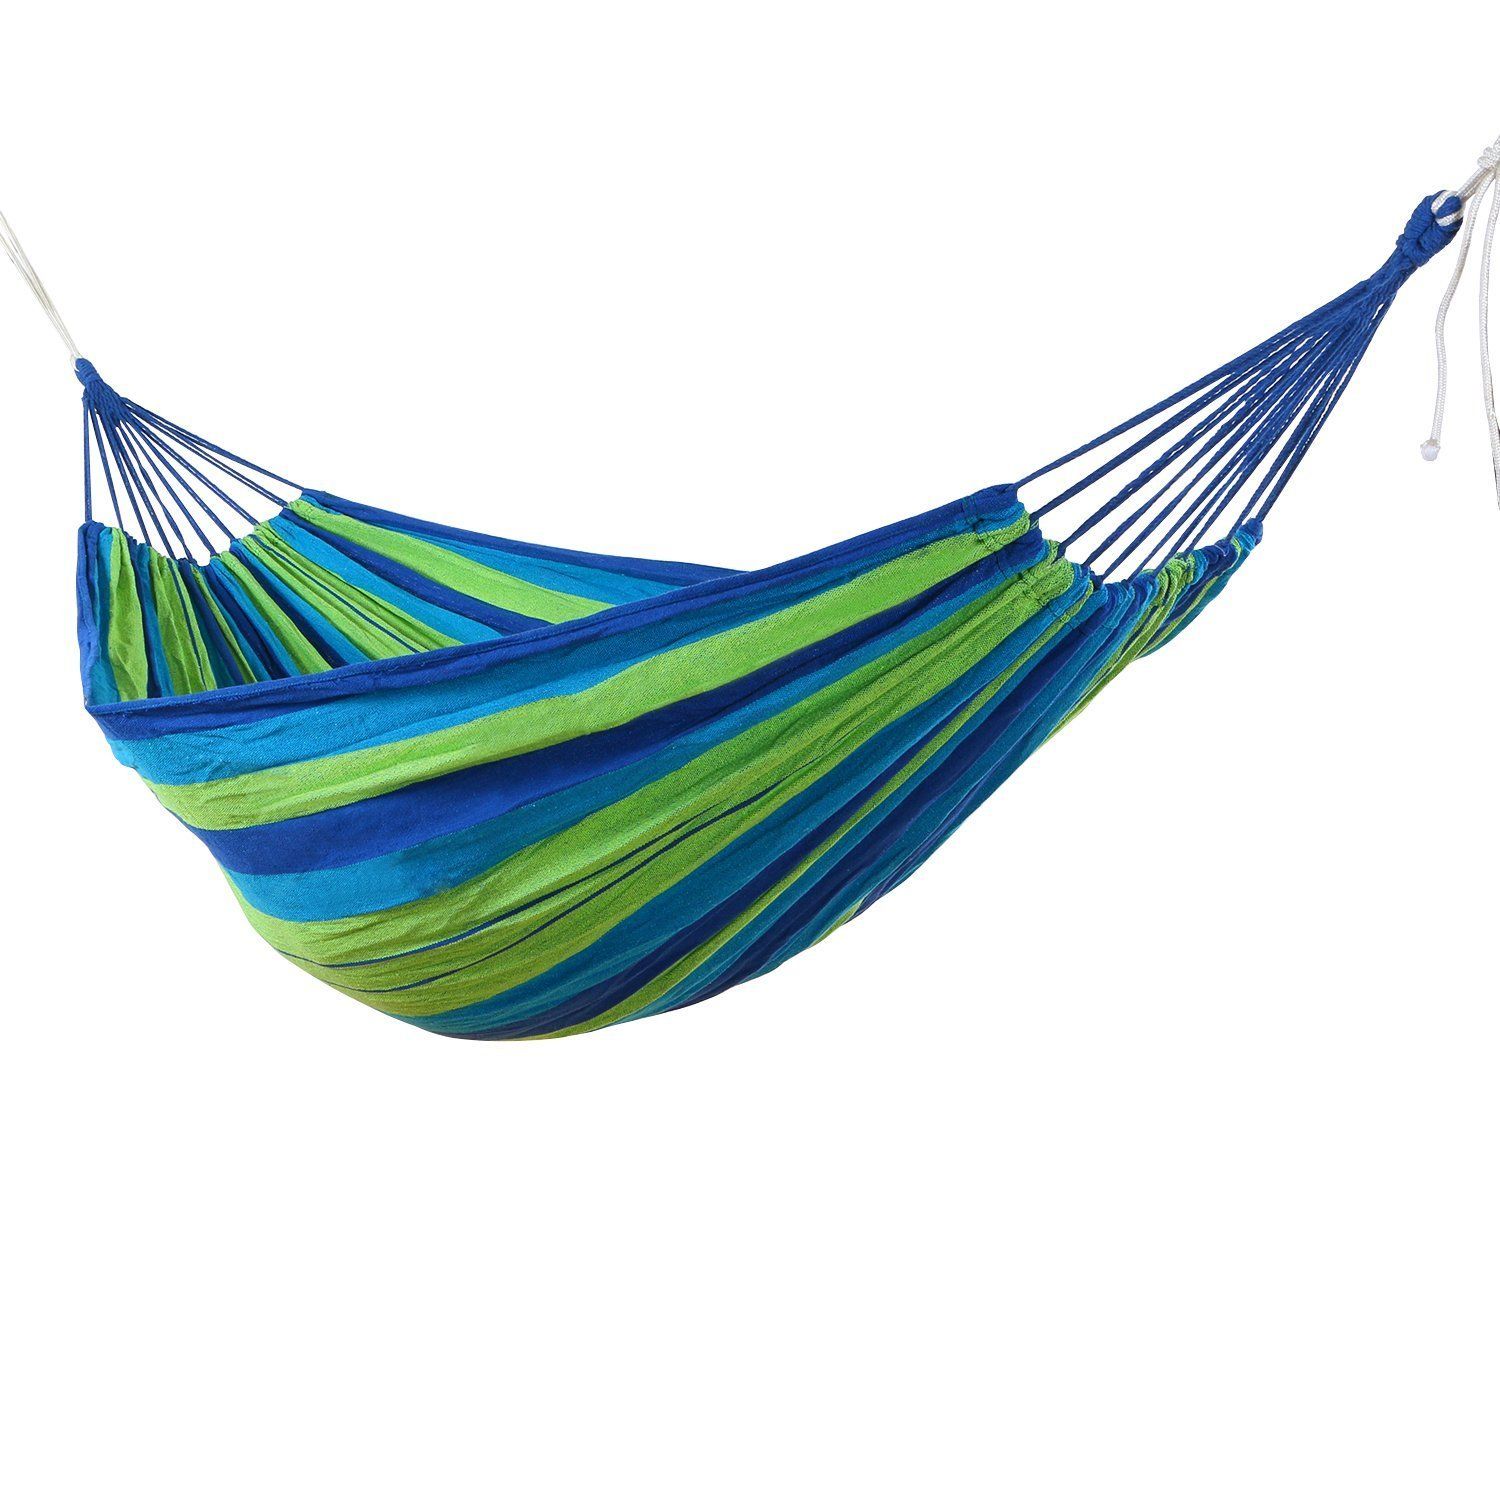 MELIFE Portable Outdoor Garden Hammock Hang Bed Travel Camping Use Swing Canvas Stripe, Carrying Pouch Included Blue Green Stripes